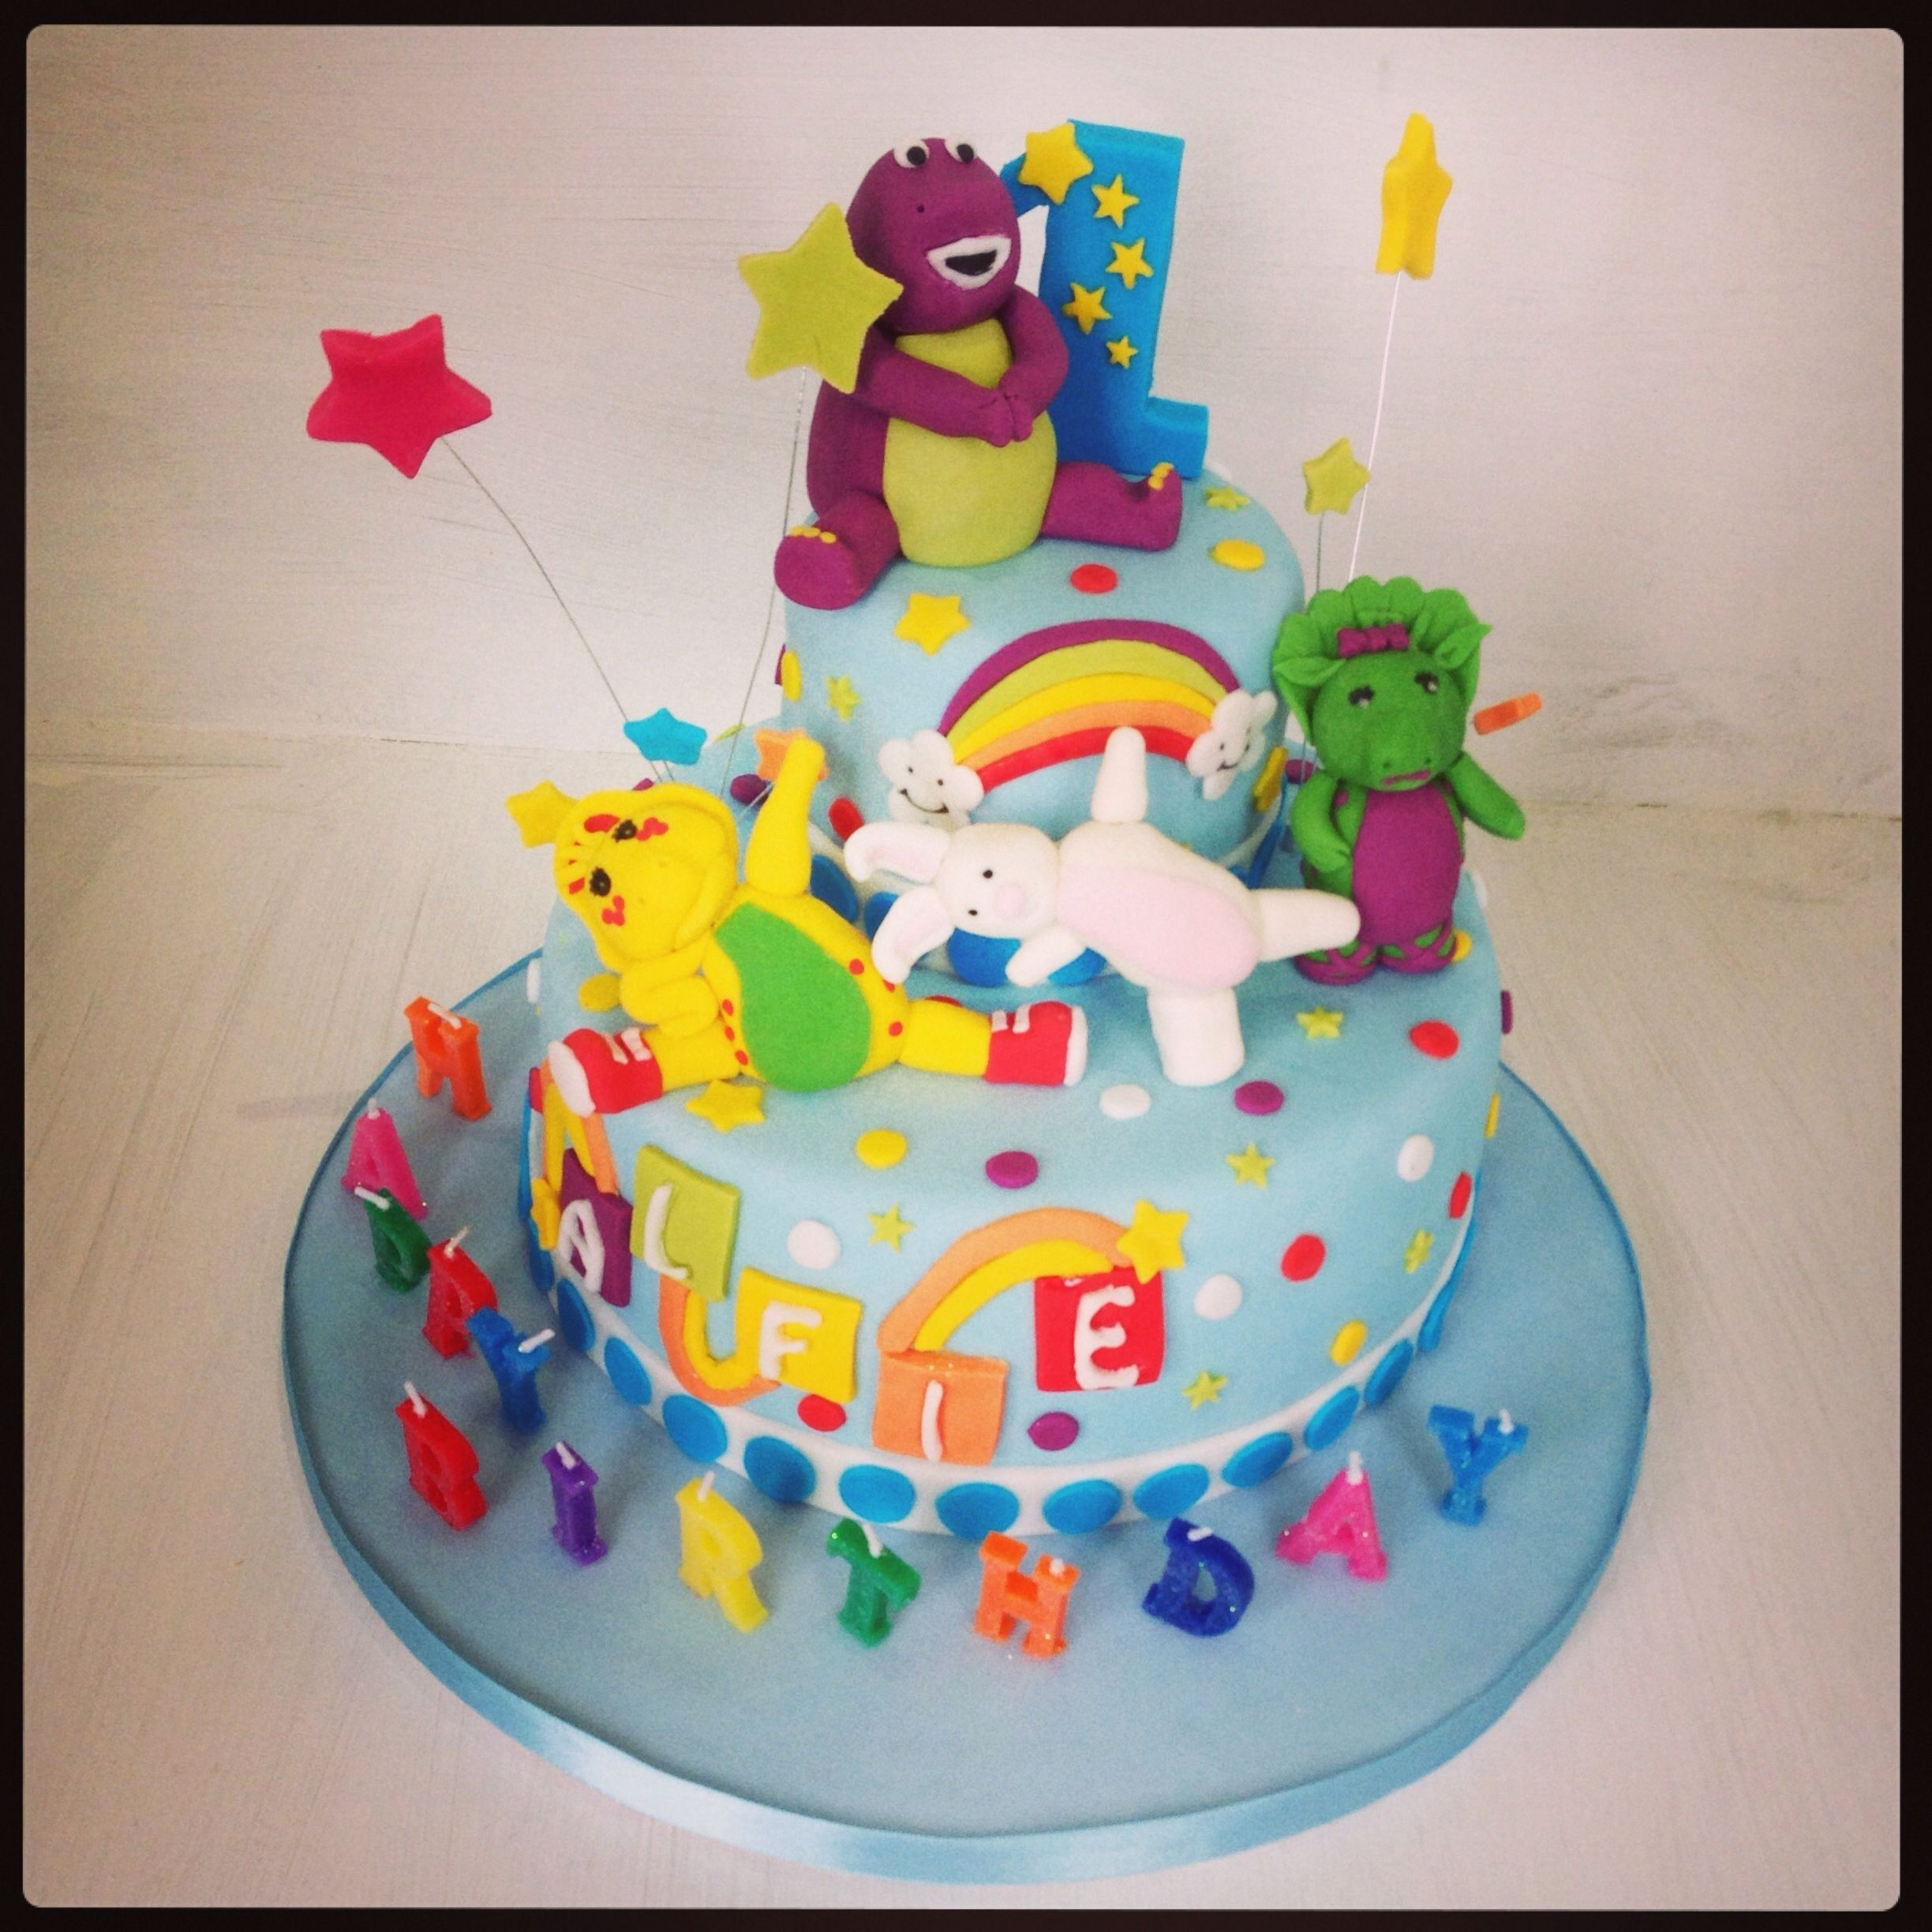 Enjoyable 30 Pretty Picture Of Barney Birthday Cake With Images Barney Personalised Birthday Cards Cominlily Jamesorg